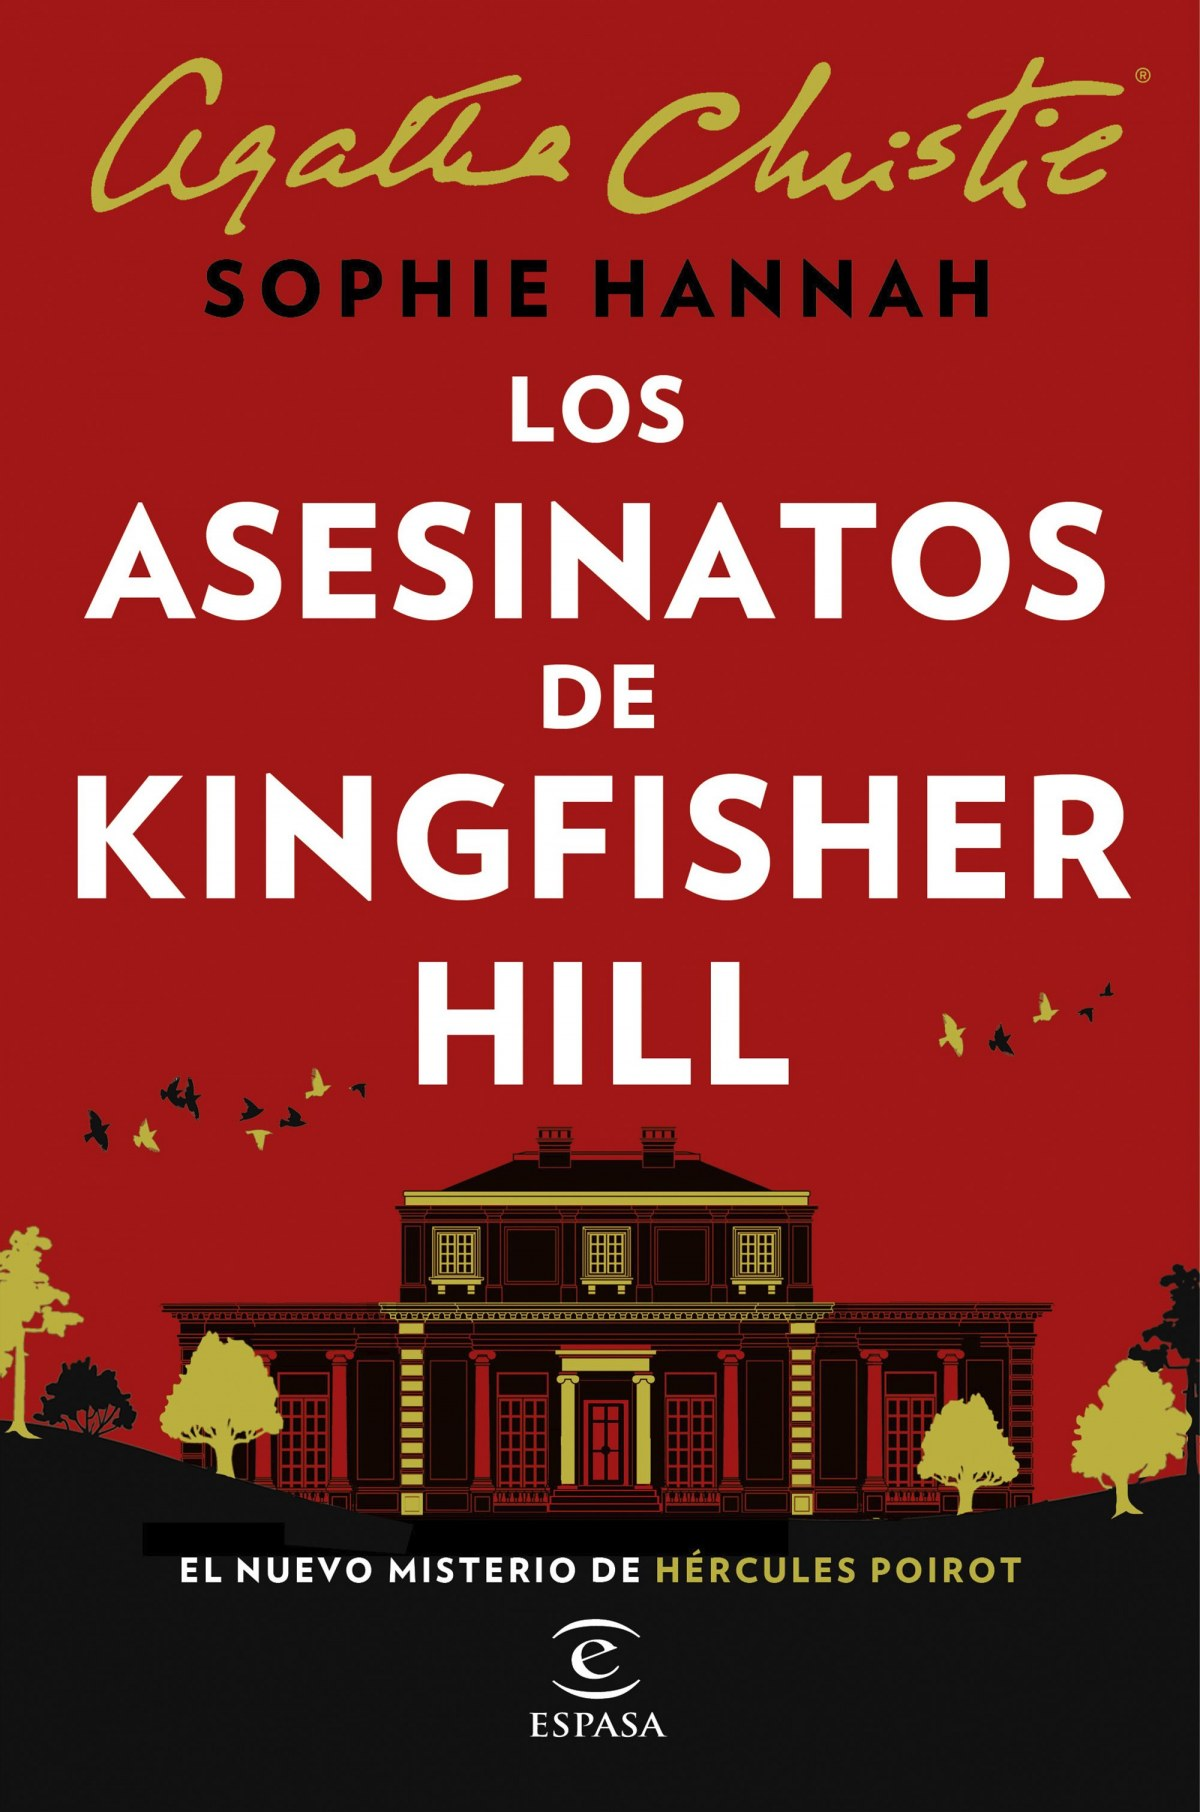 Los asesinatos de Kingfisher Hill 9788467061352